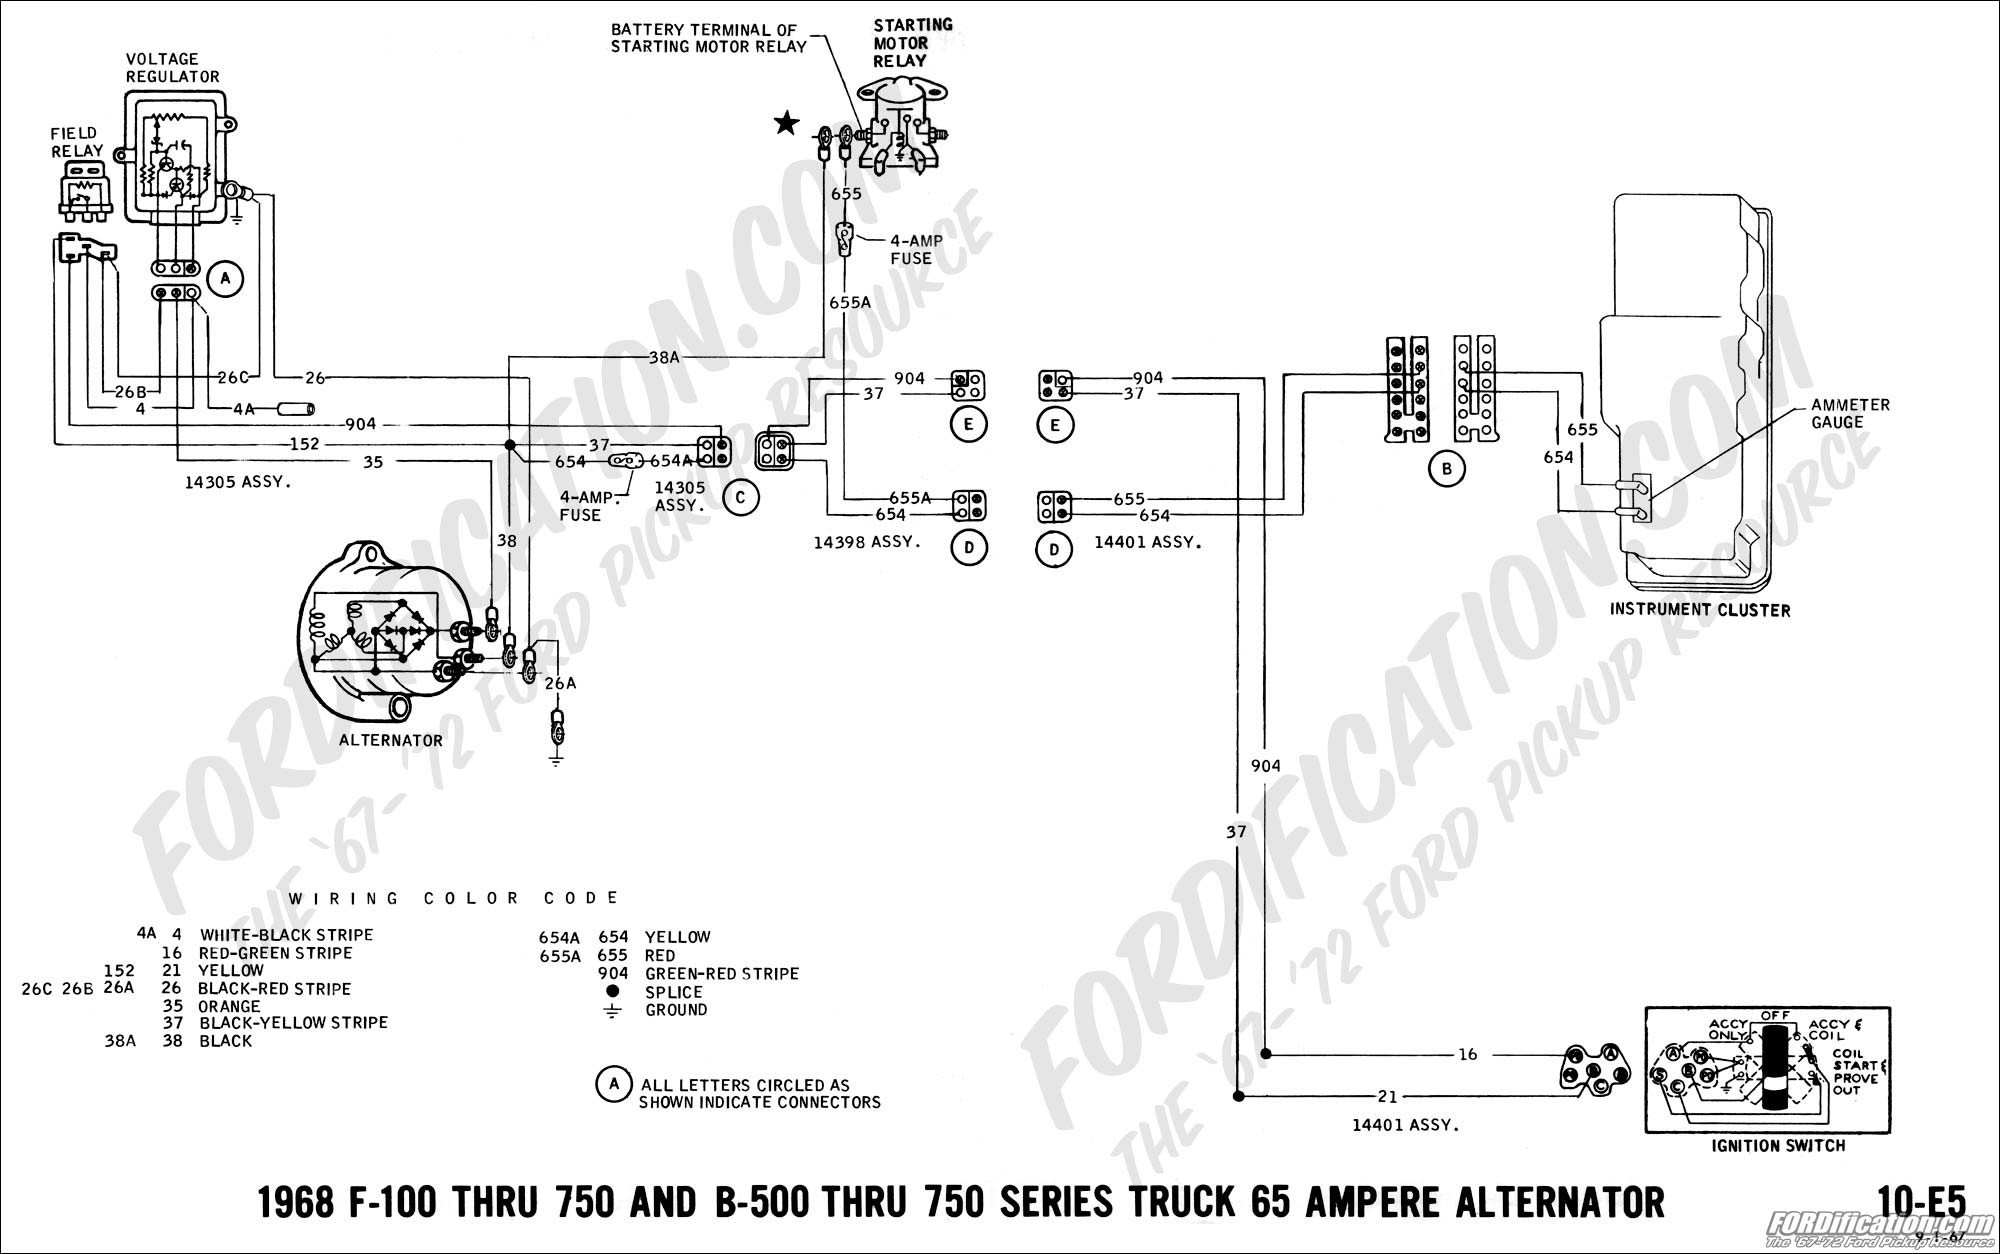 1970 ford ranchero wiring diagram schematic 1970 ford torino wiring diagram 1970 ford torino wiring diagram - wiring diagram ...